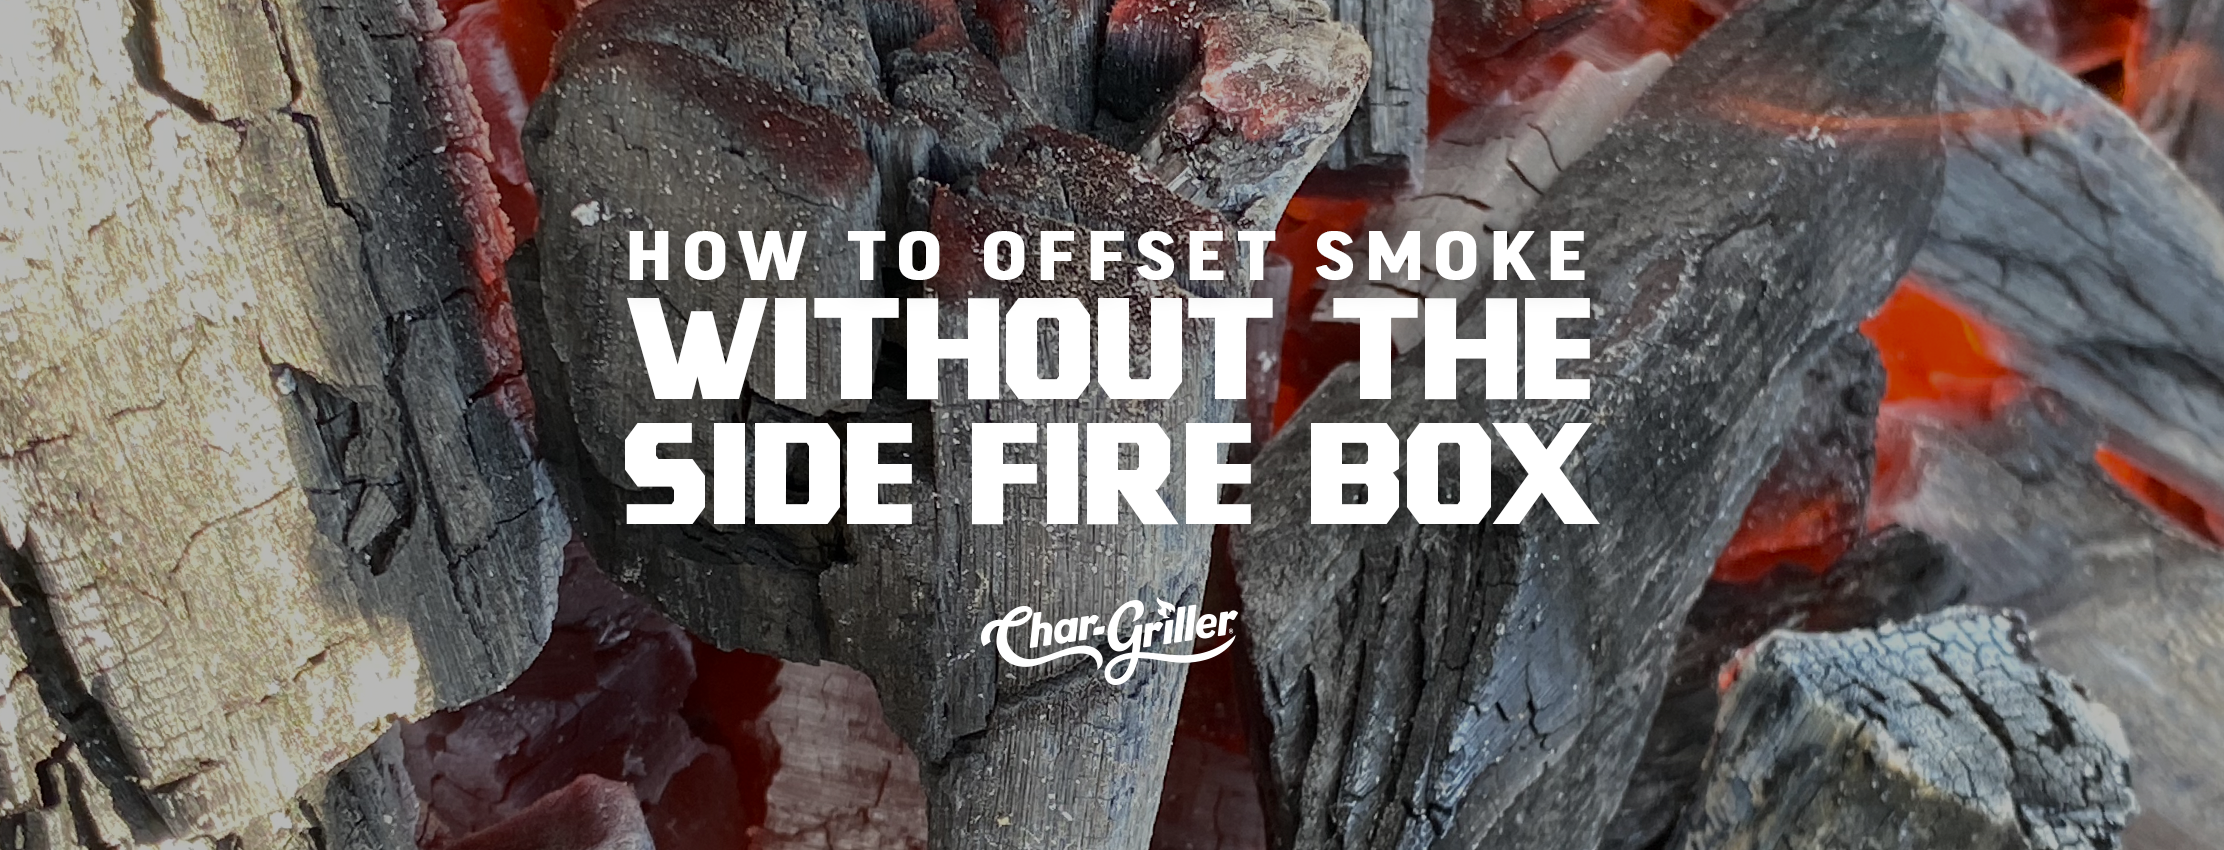 How to Offset Smoke Without the Side Fire Box